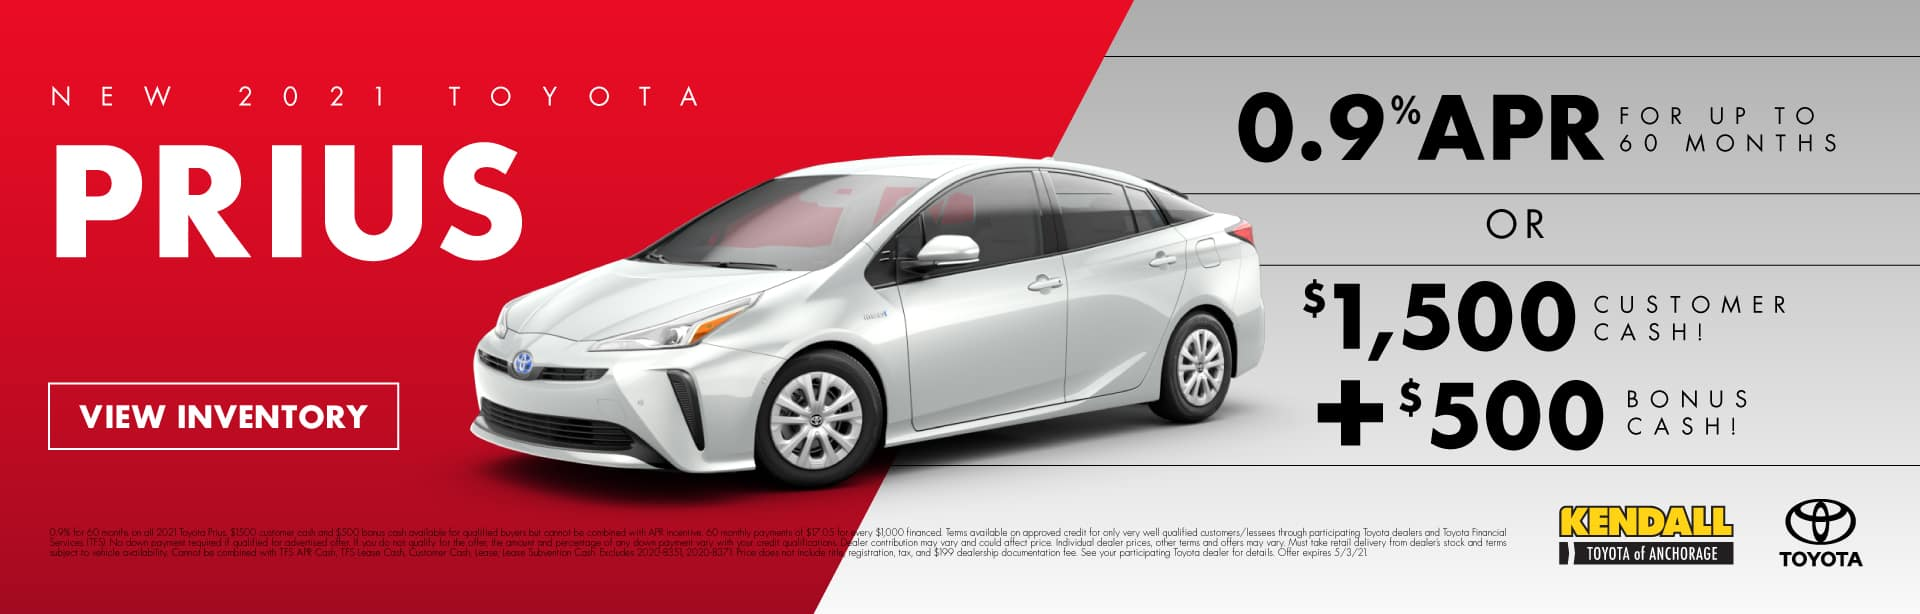 17411-AncToy-Apr21-Web-banners-PRIUS